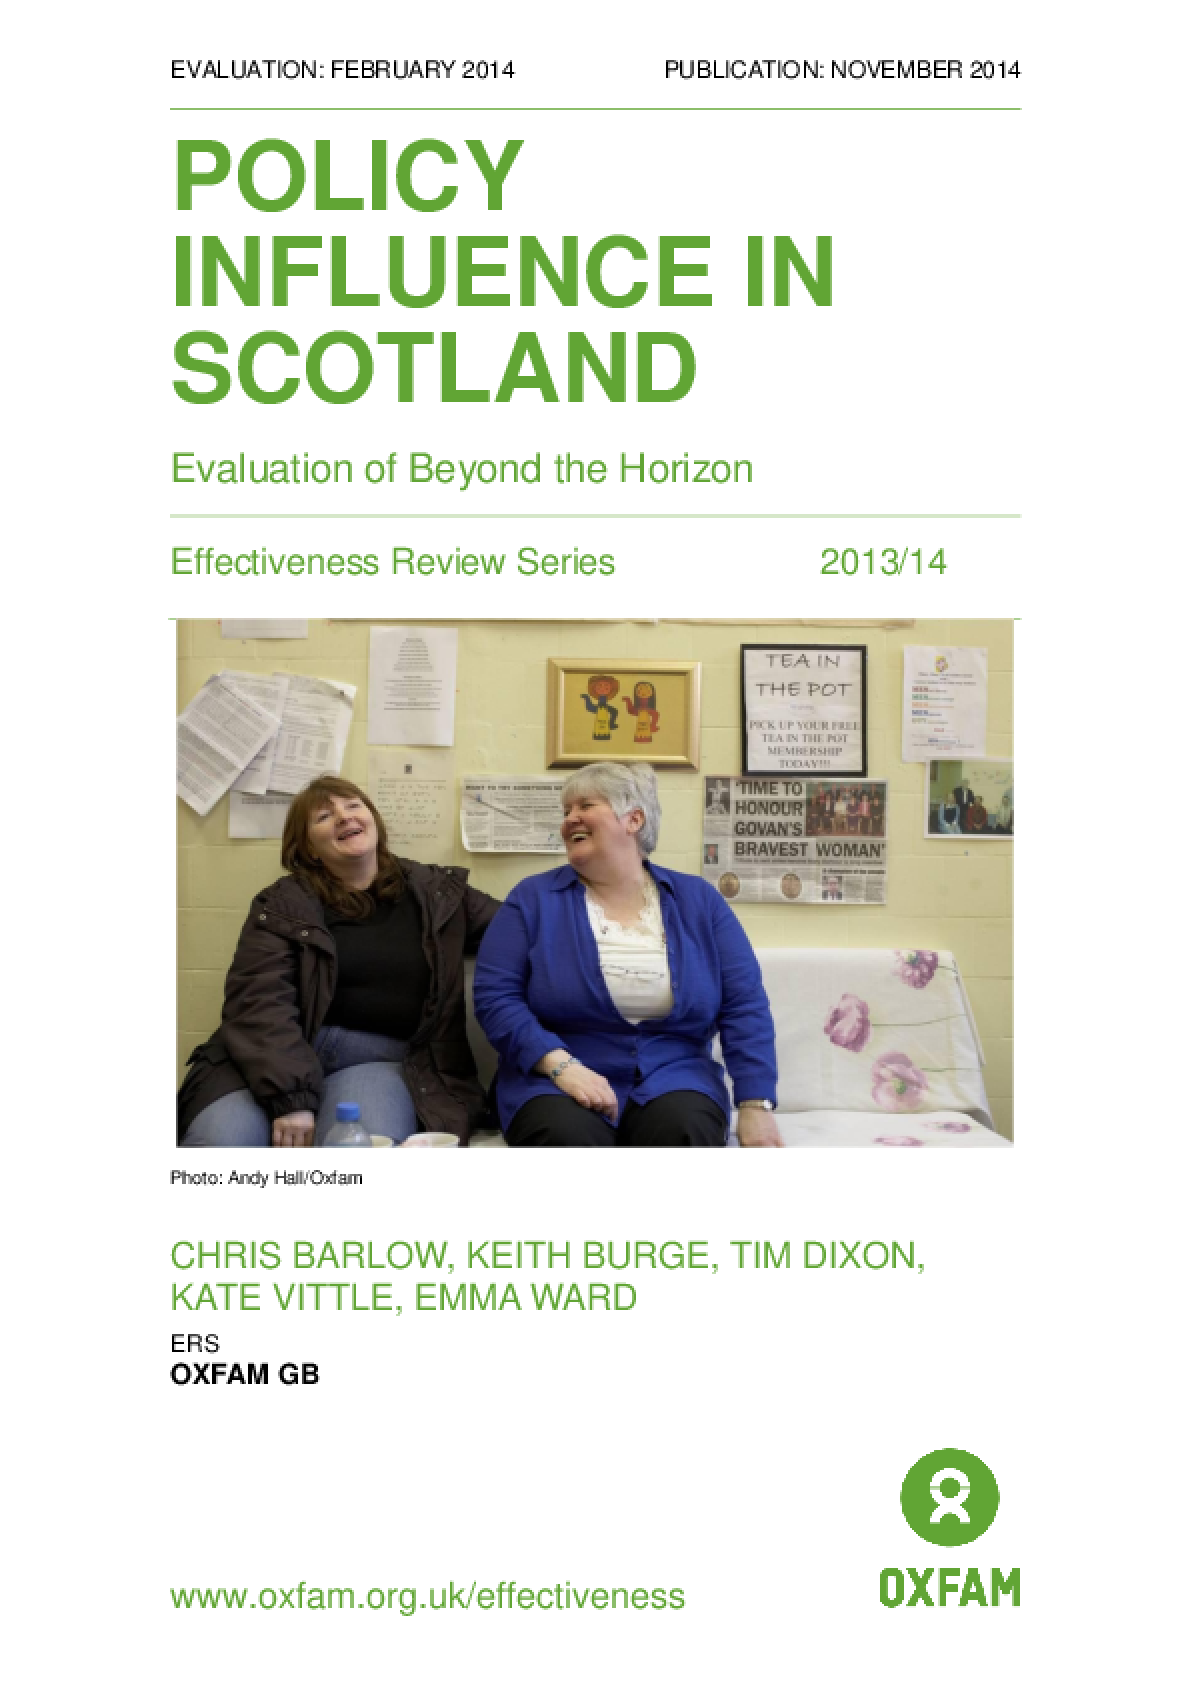 Policy Influence in Scotland: Evaluation of Beyond the Horizon